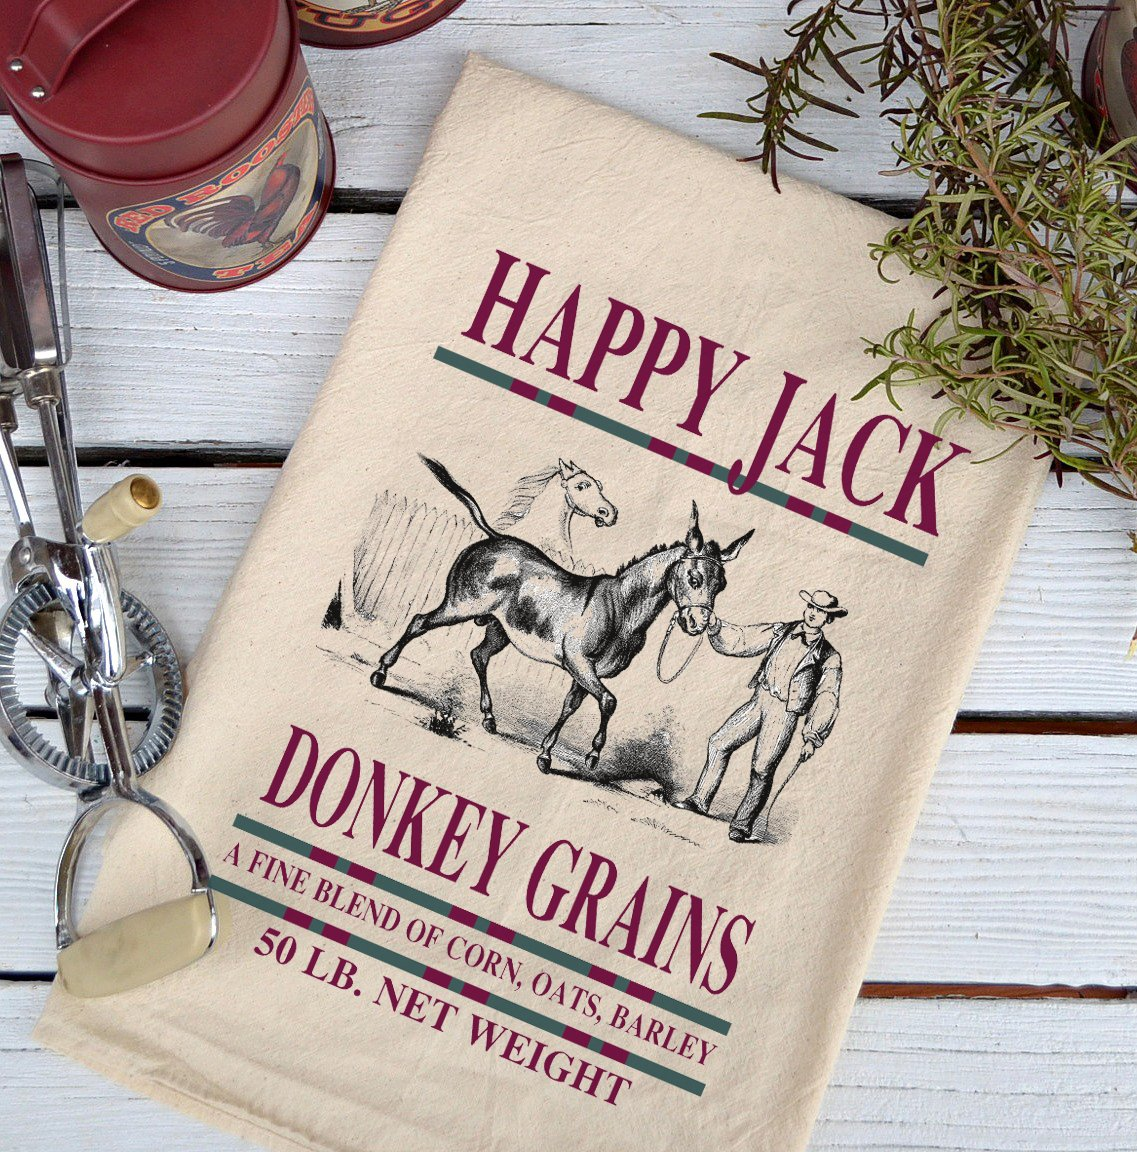 Farmhouse Natural Flour Sack Happy Jack Donkey Grains Country Kitchen Towel